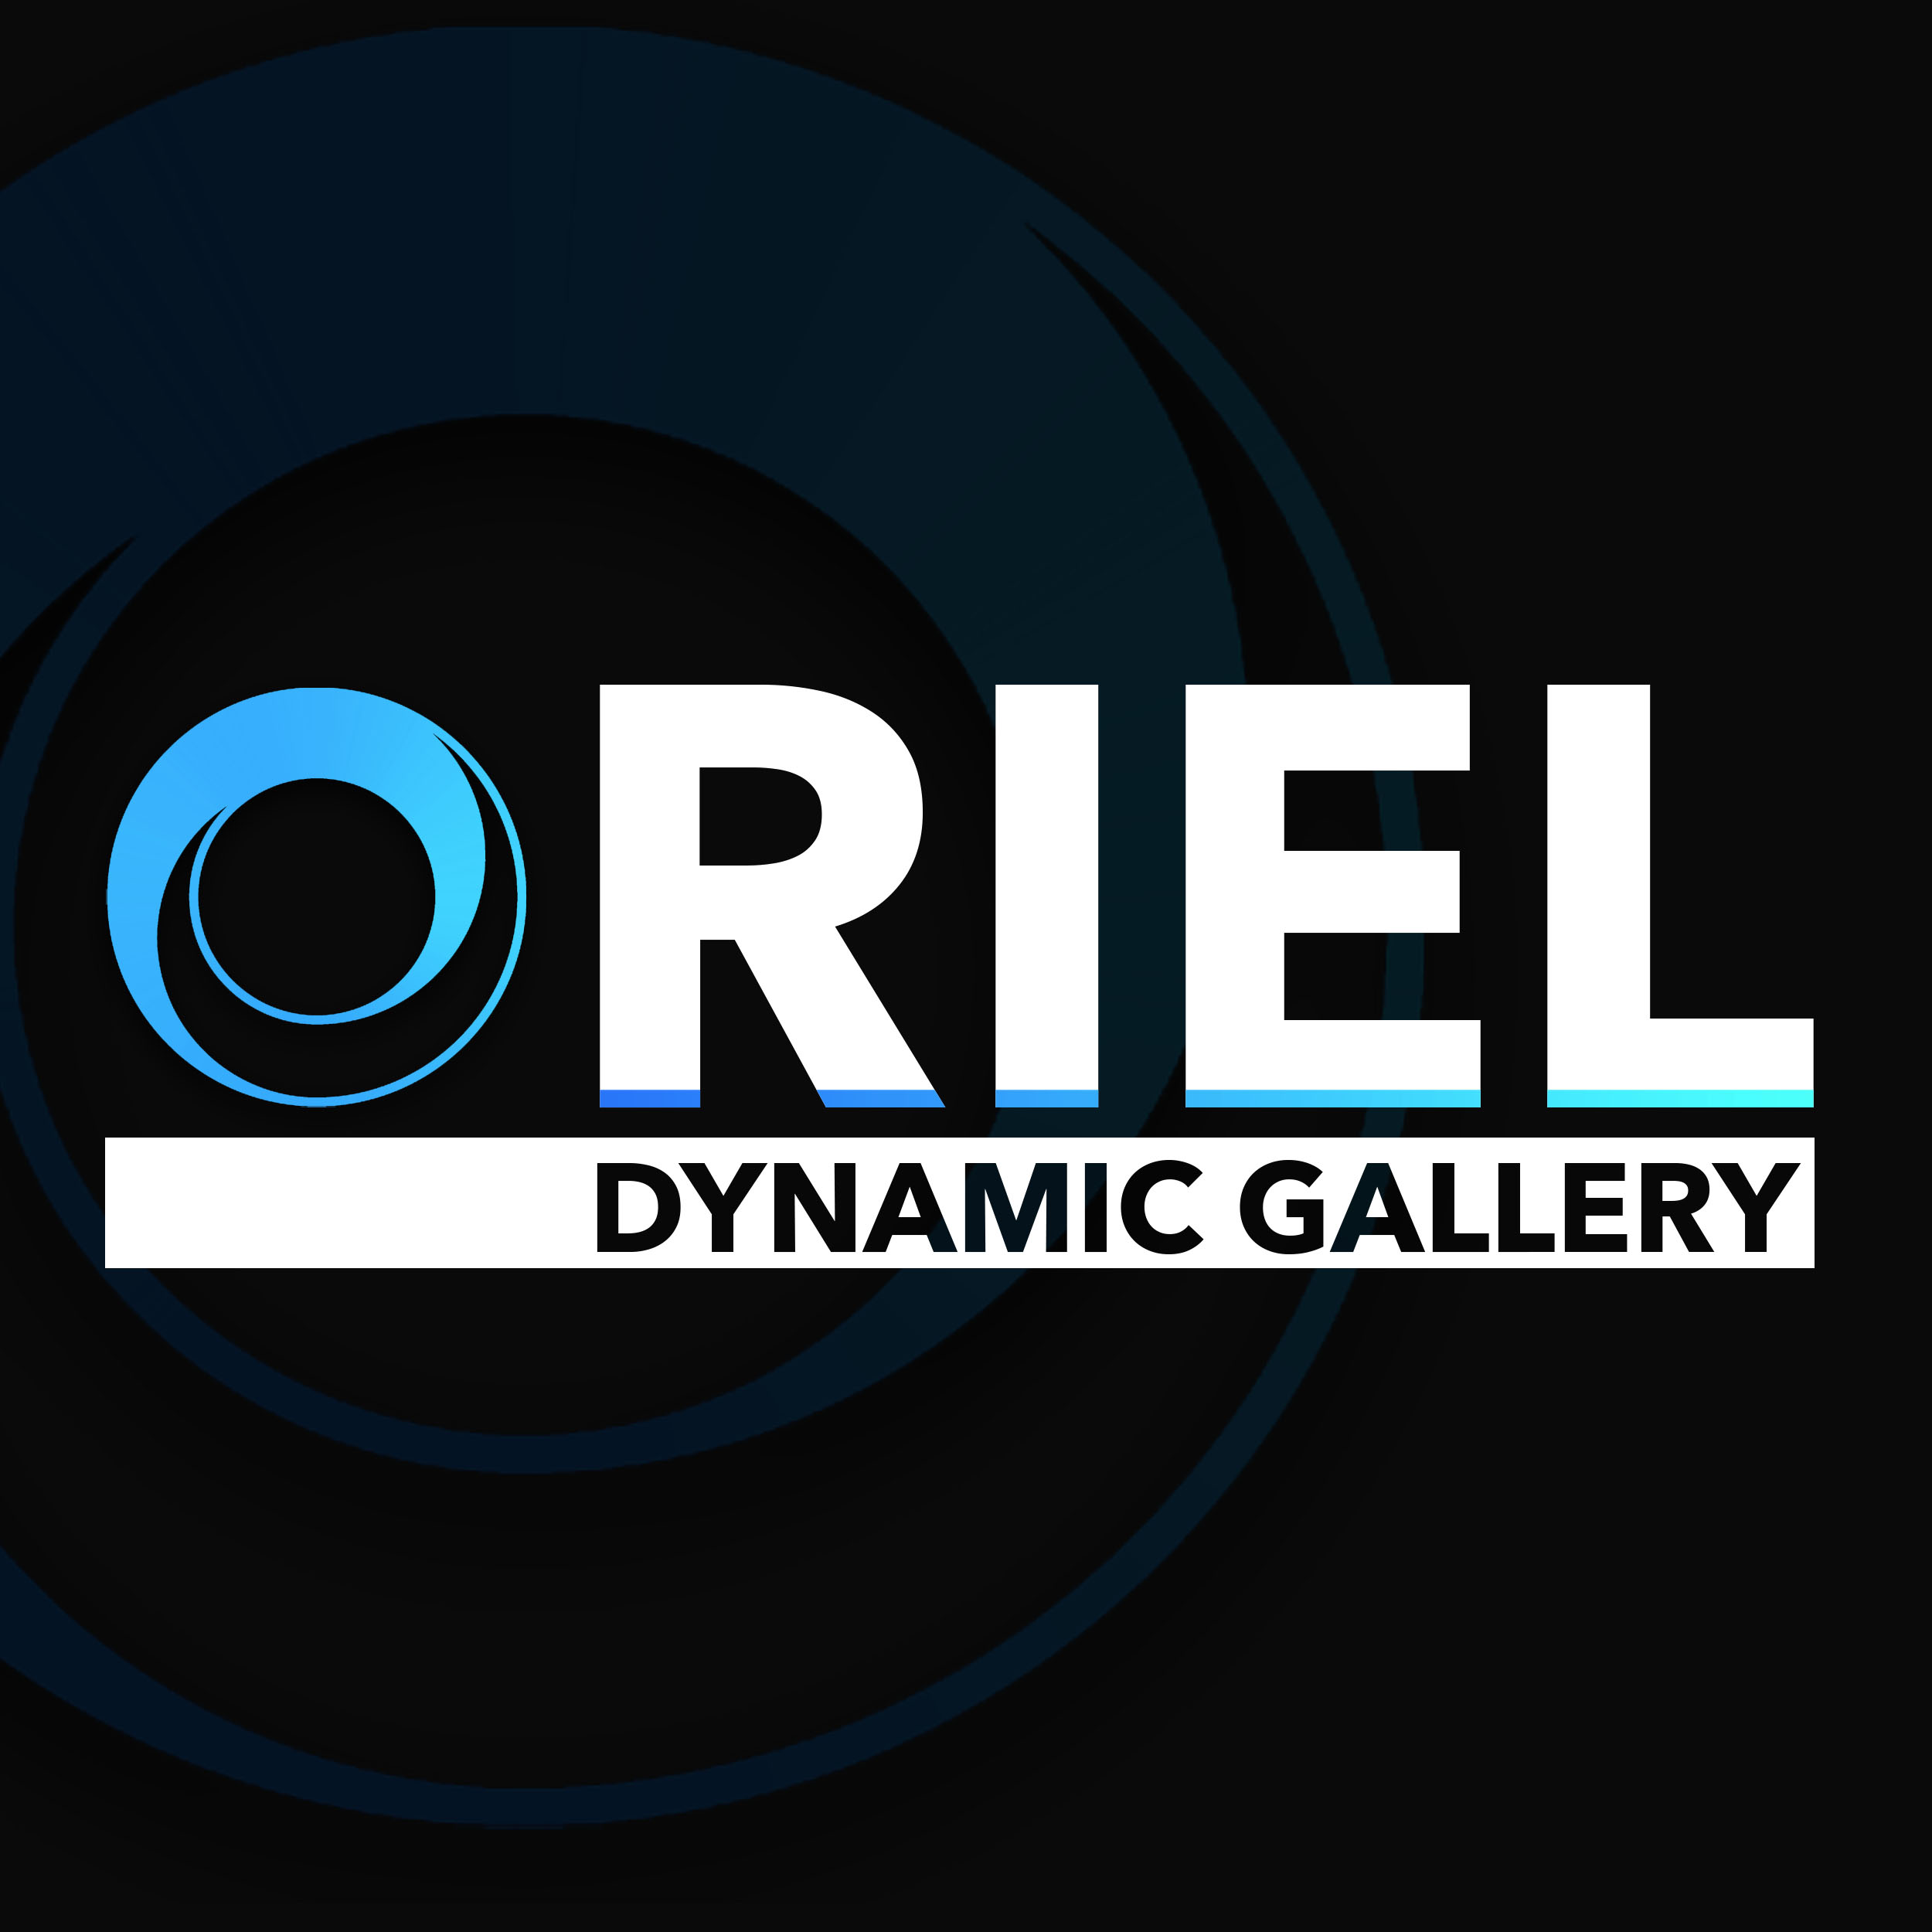 OrielPro UNLIMITED Sites